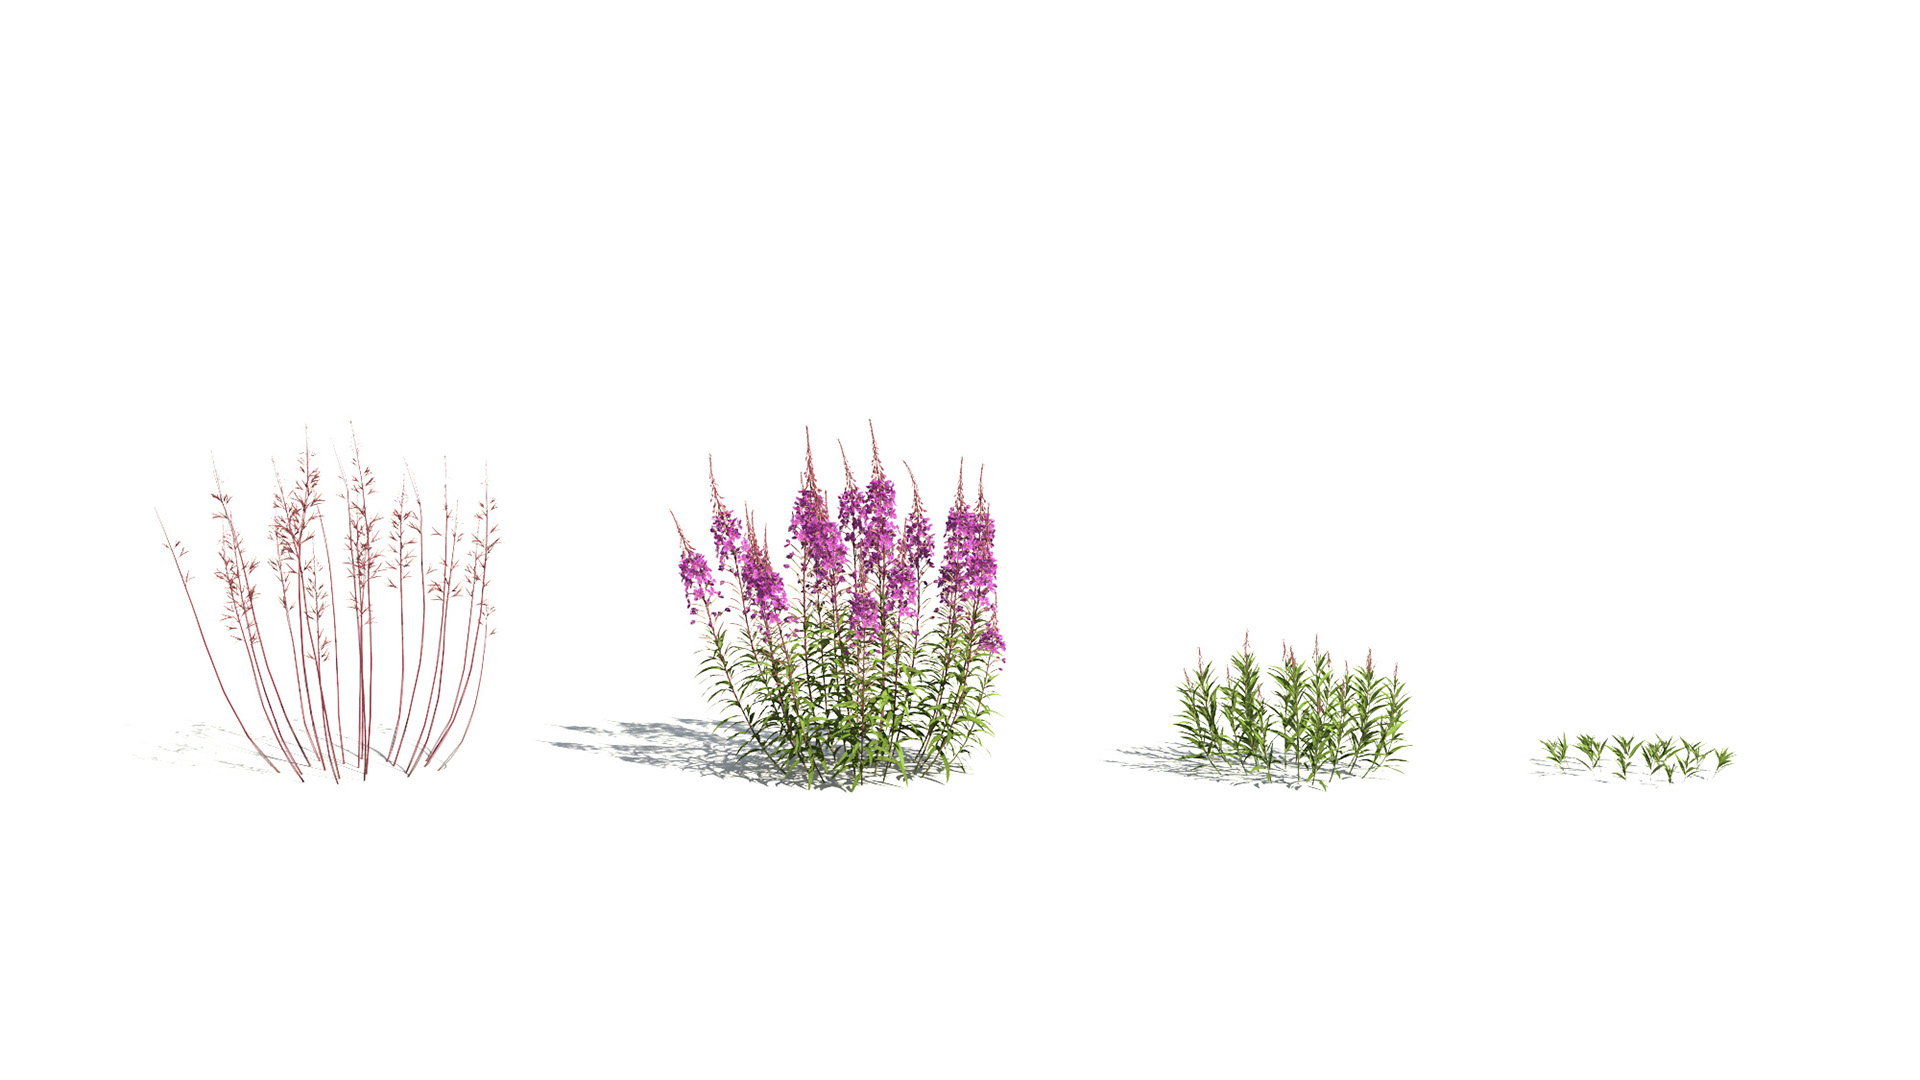 3D model of the Fireweed Chamerion angustifolium season variations